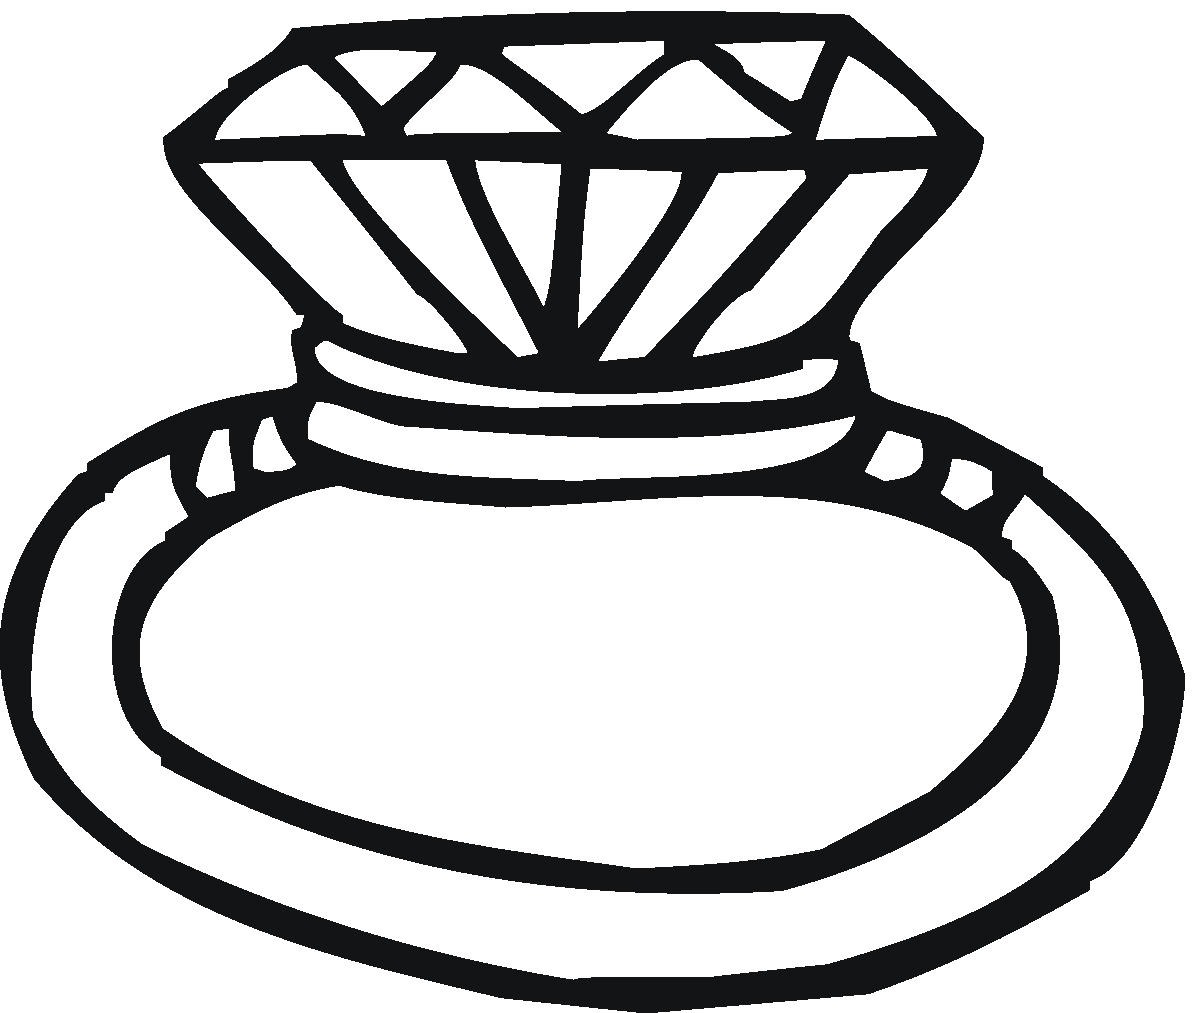 Decoration clipart wedding ring Art and wedding white rings